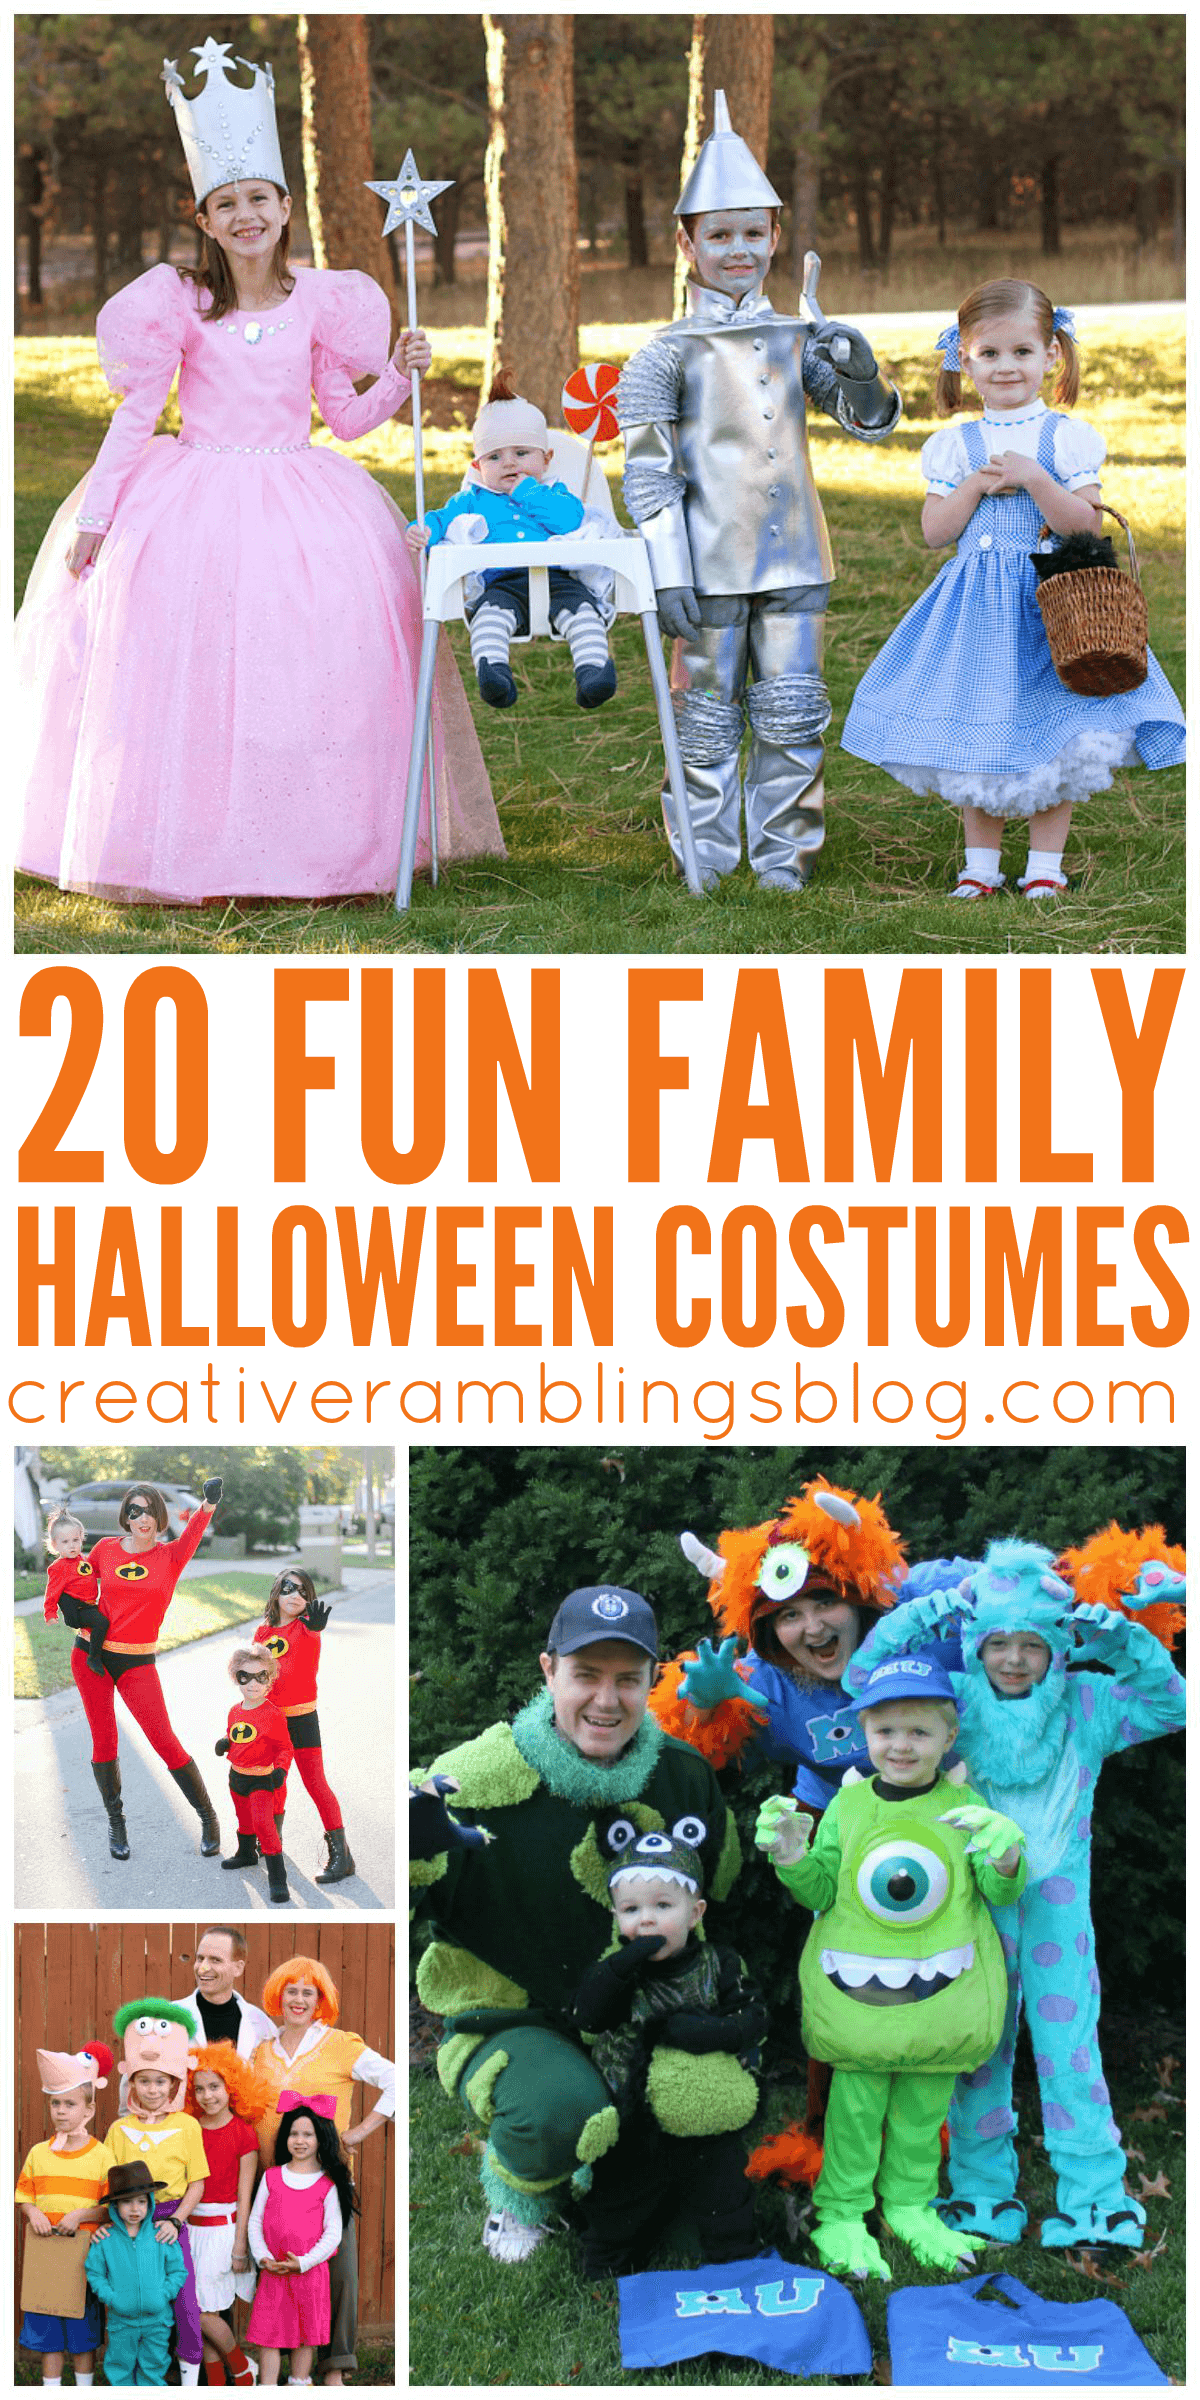 20 adorable and clever family or group Halloween costumes  sc 1 st  Creative Ramblings & 20 Fun Family Halloween Costumes - Creative Ramblings